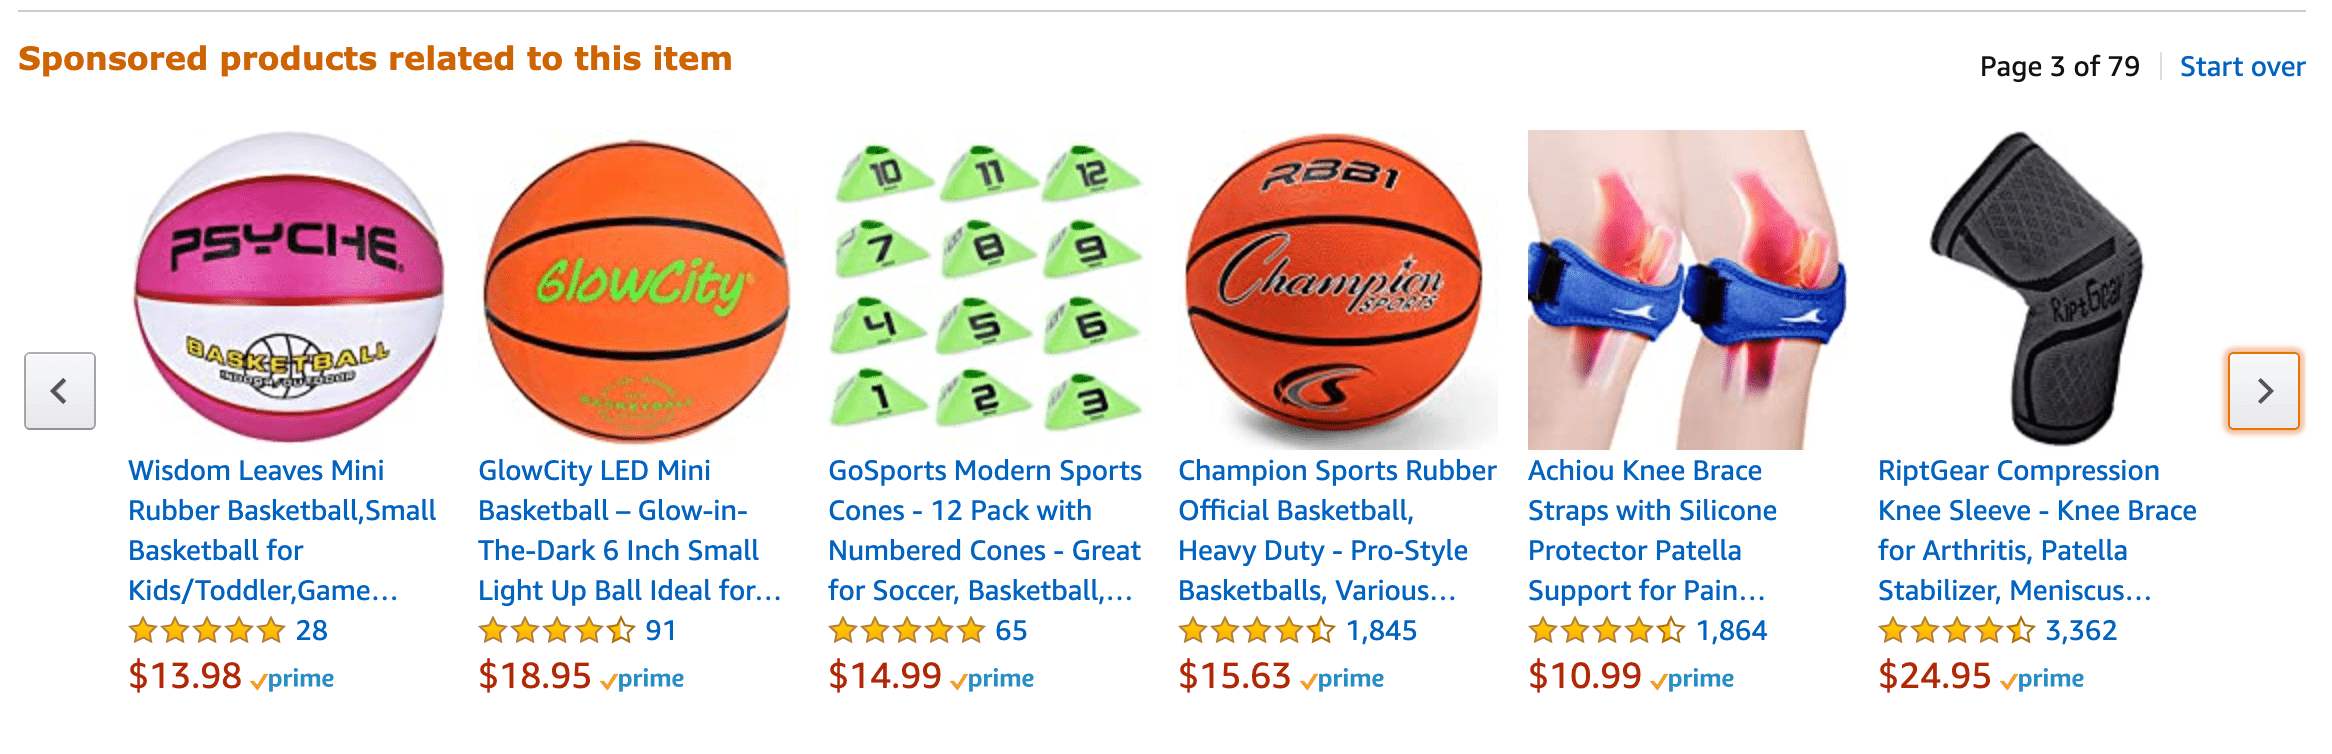 sponsored products related to basketball on amazon